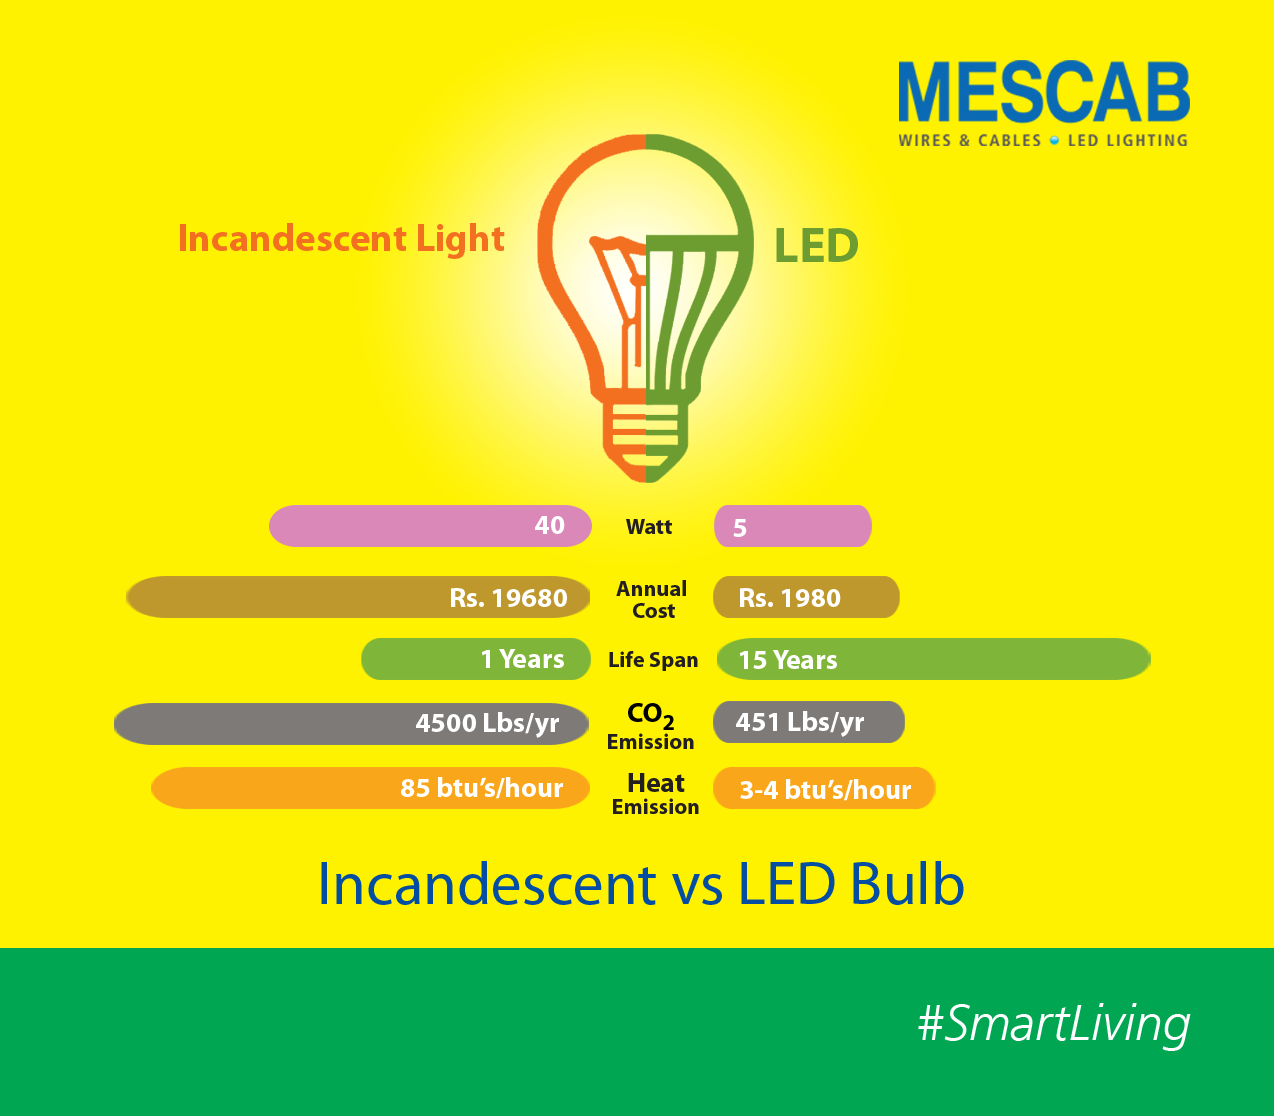 Advantages Over Incandescent Light Makes Mescab Leds Throws Perfect Light On Why Opt For Smartliving Incandescent Lighting Smart Living Led Lights